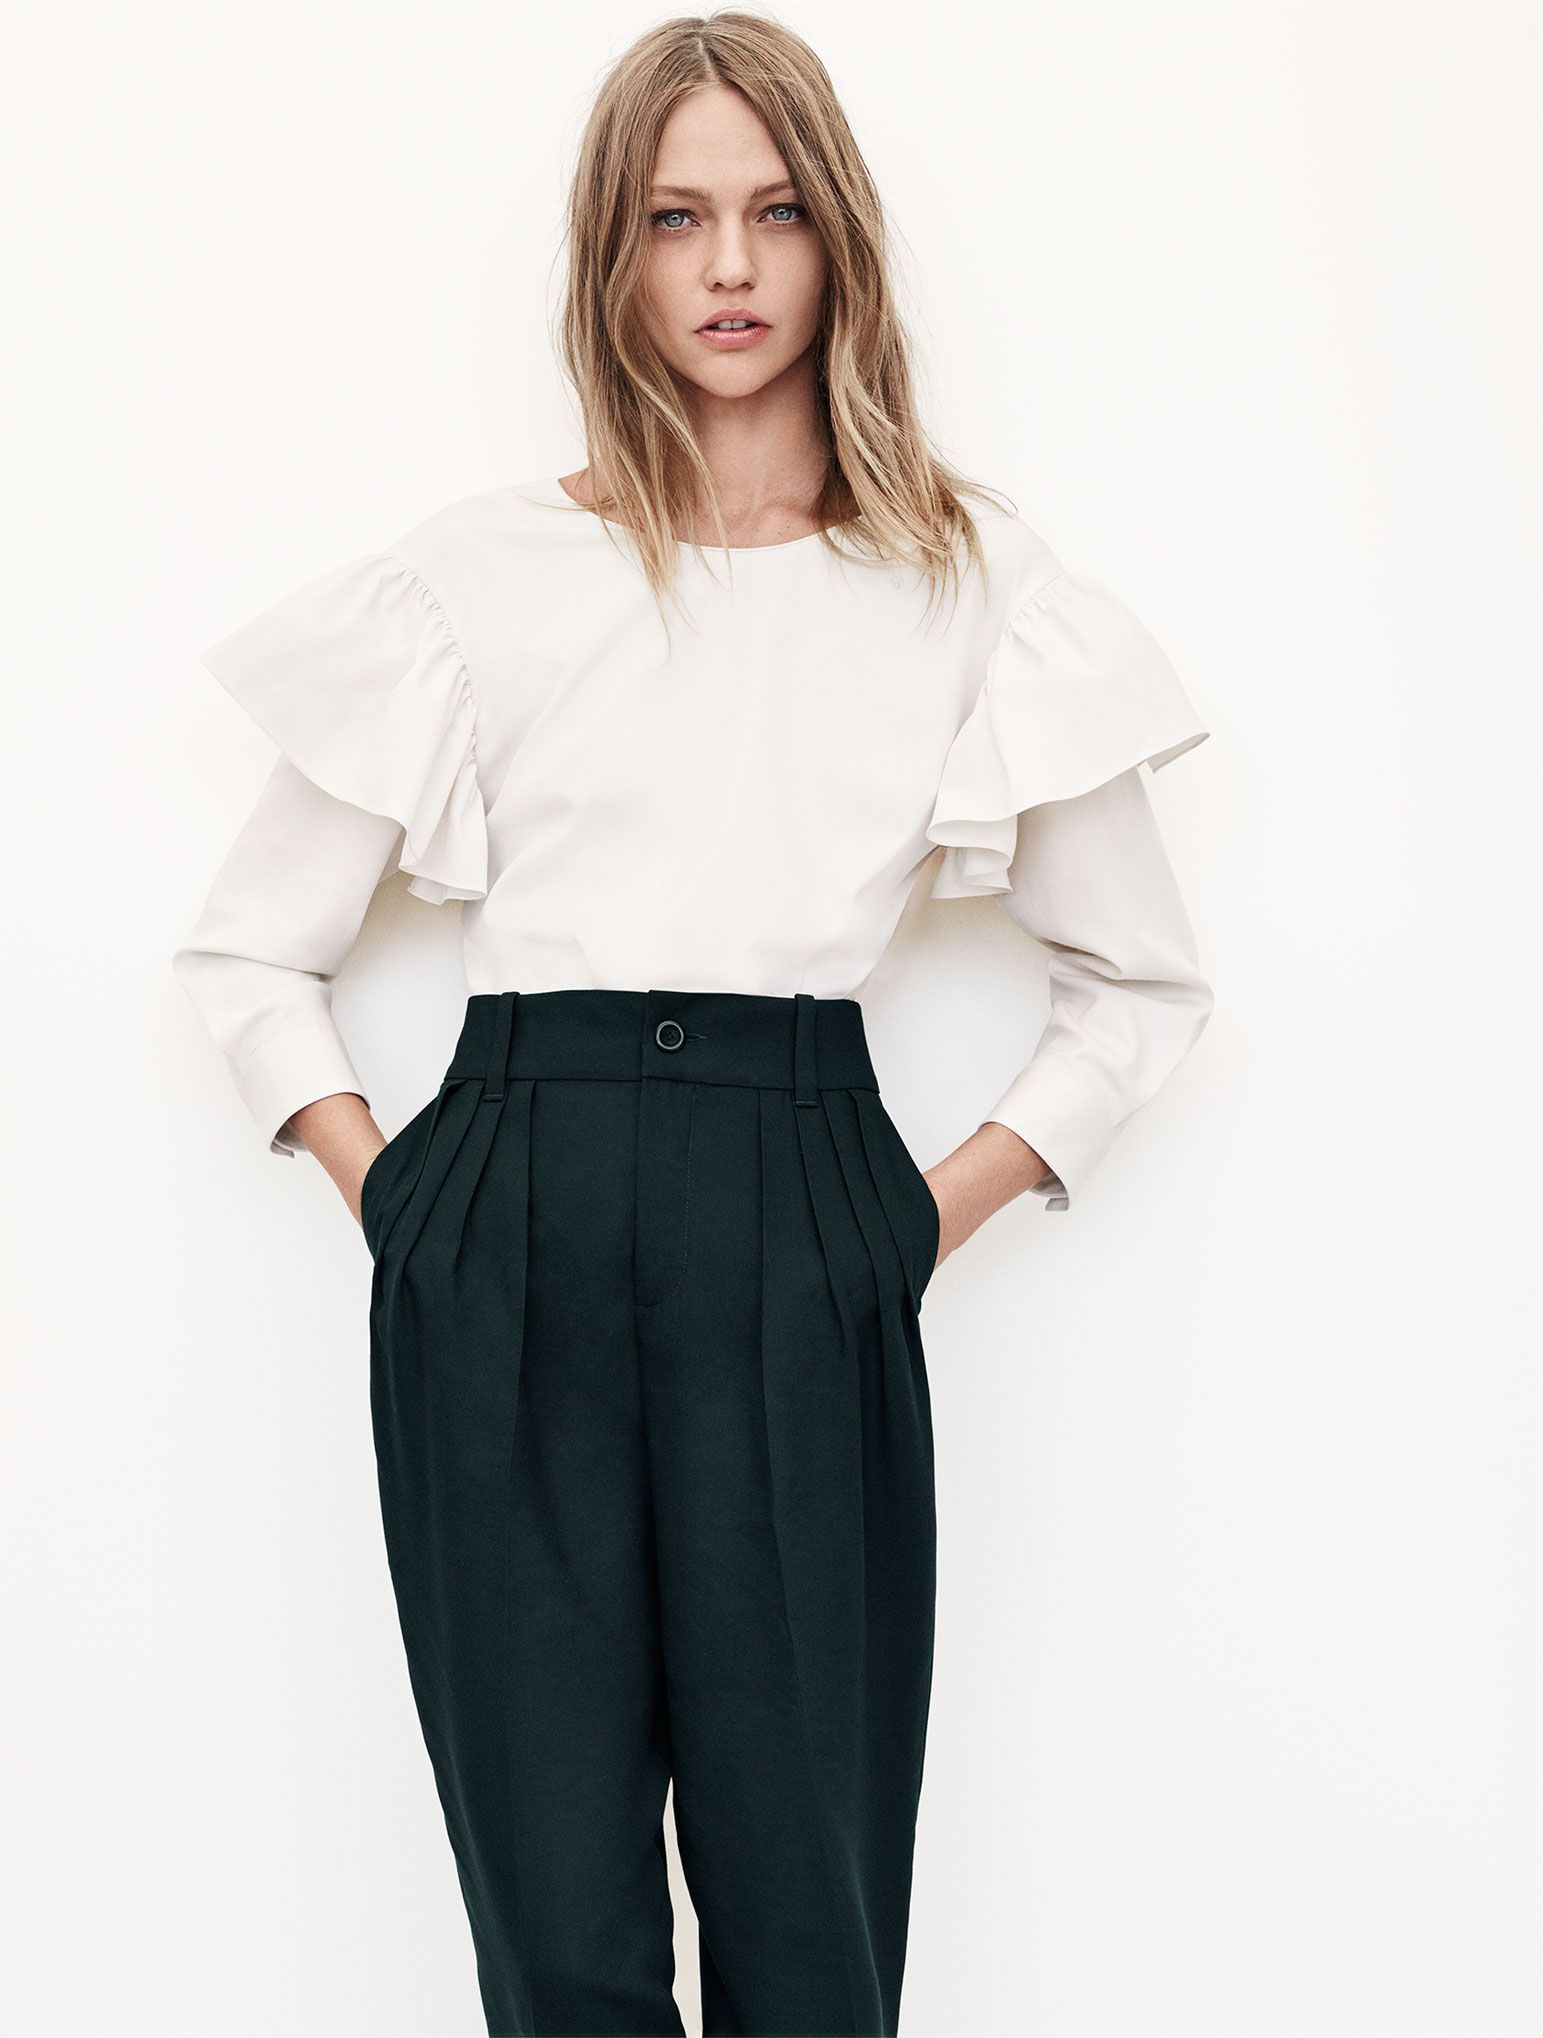 Zara apuesta por la moda sostenible | LOVE IT | Moda zara